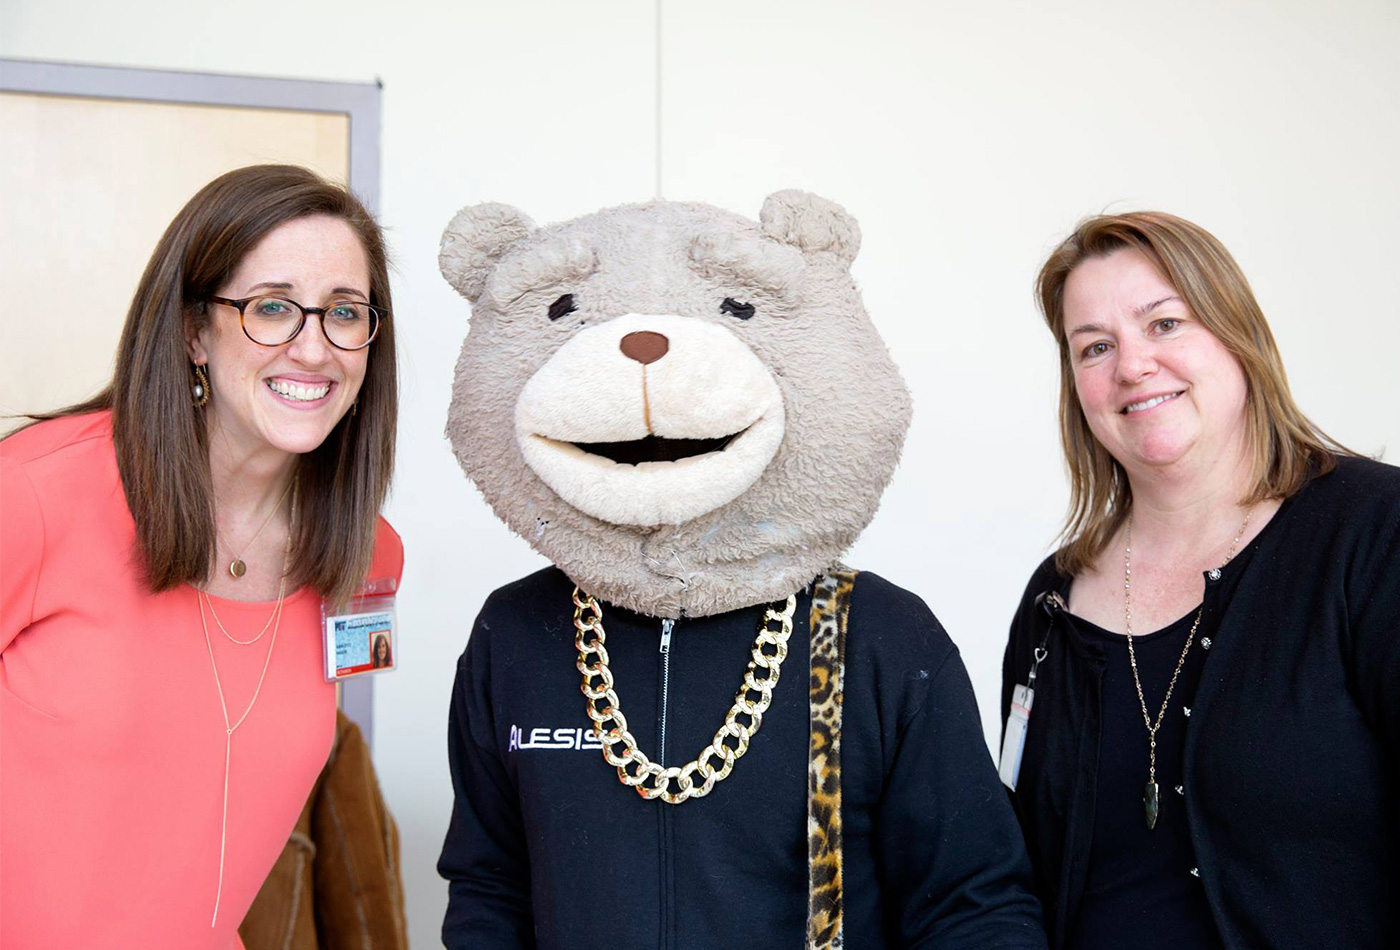 A teddy bear character poses between two women.